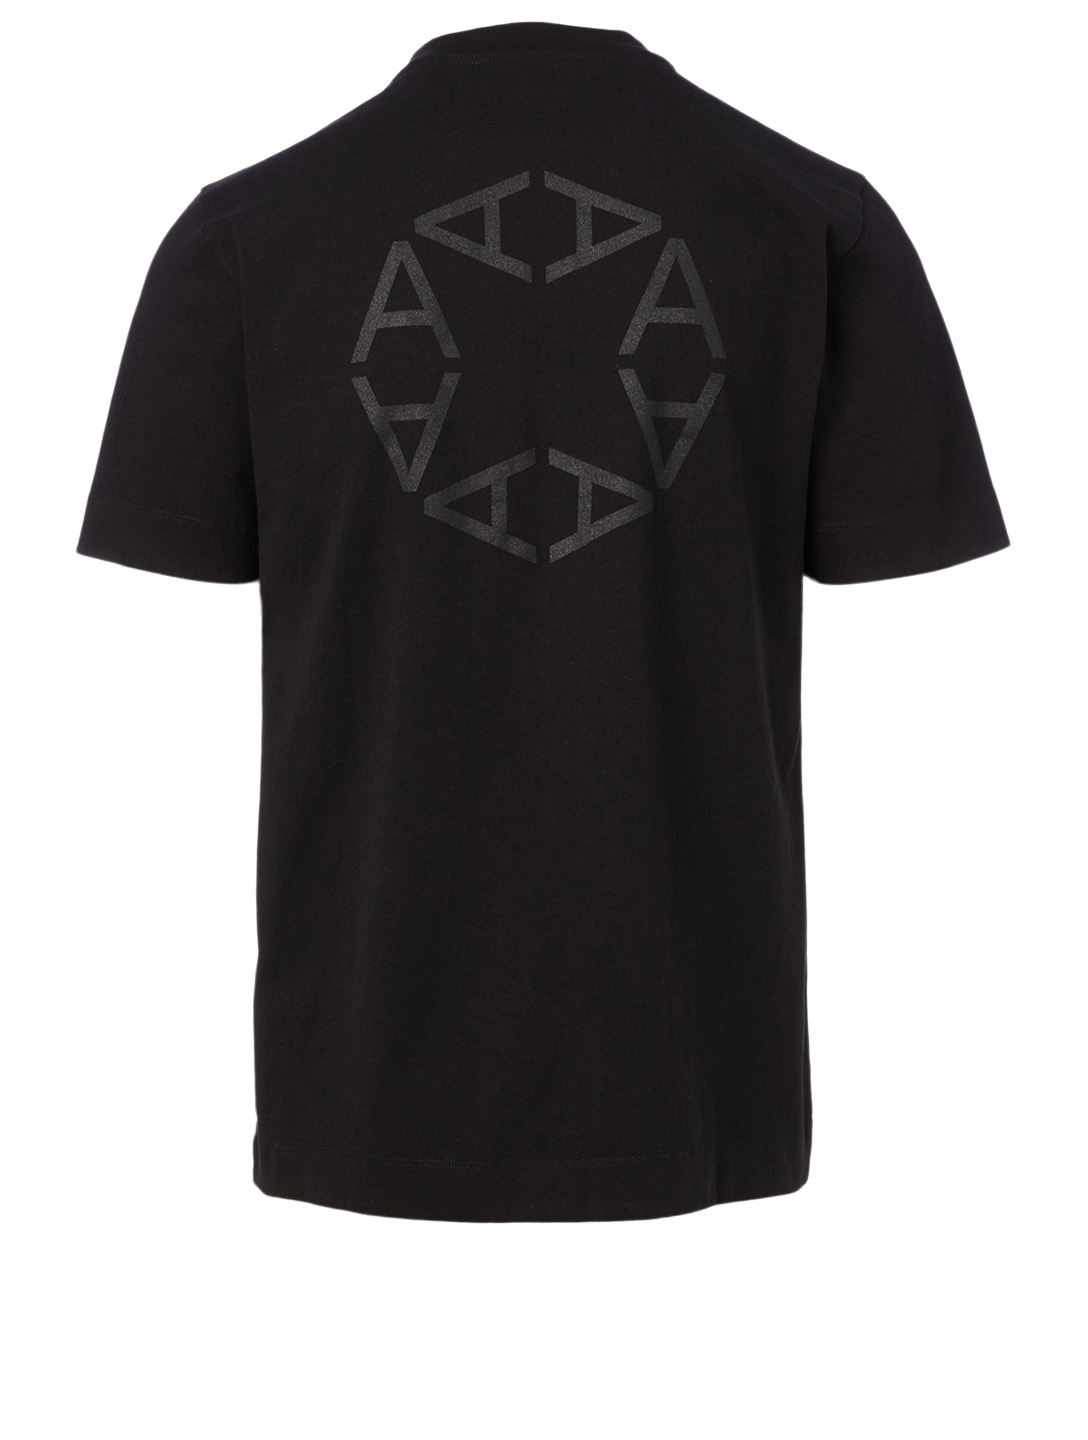 1017 ALYX 9SM Sphere Cotton T-Shirt Men's Black